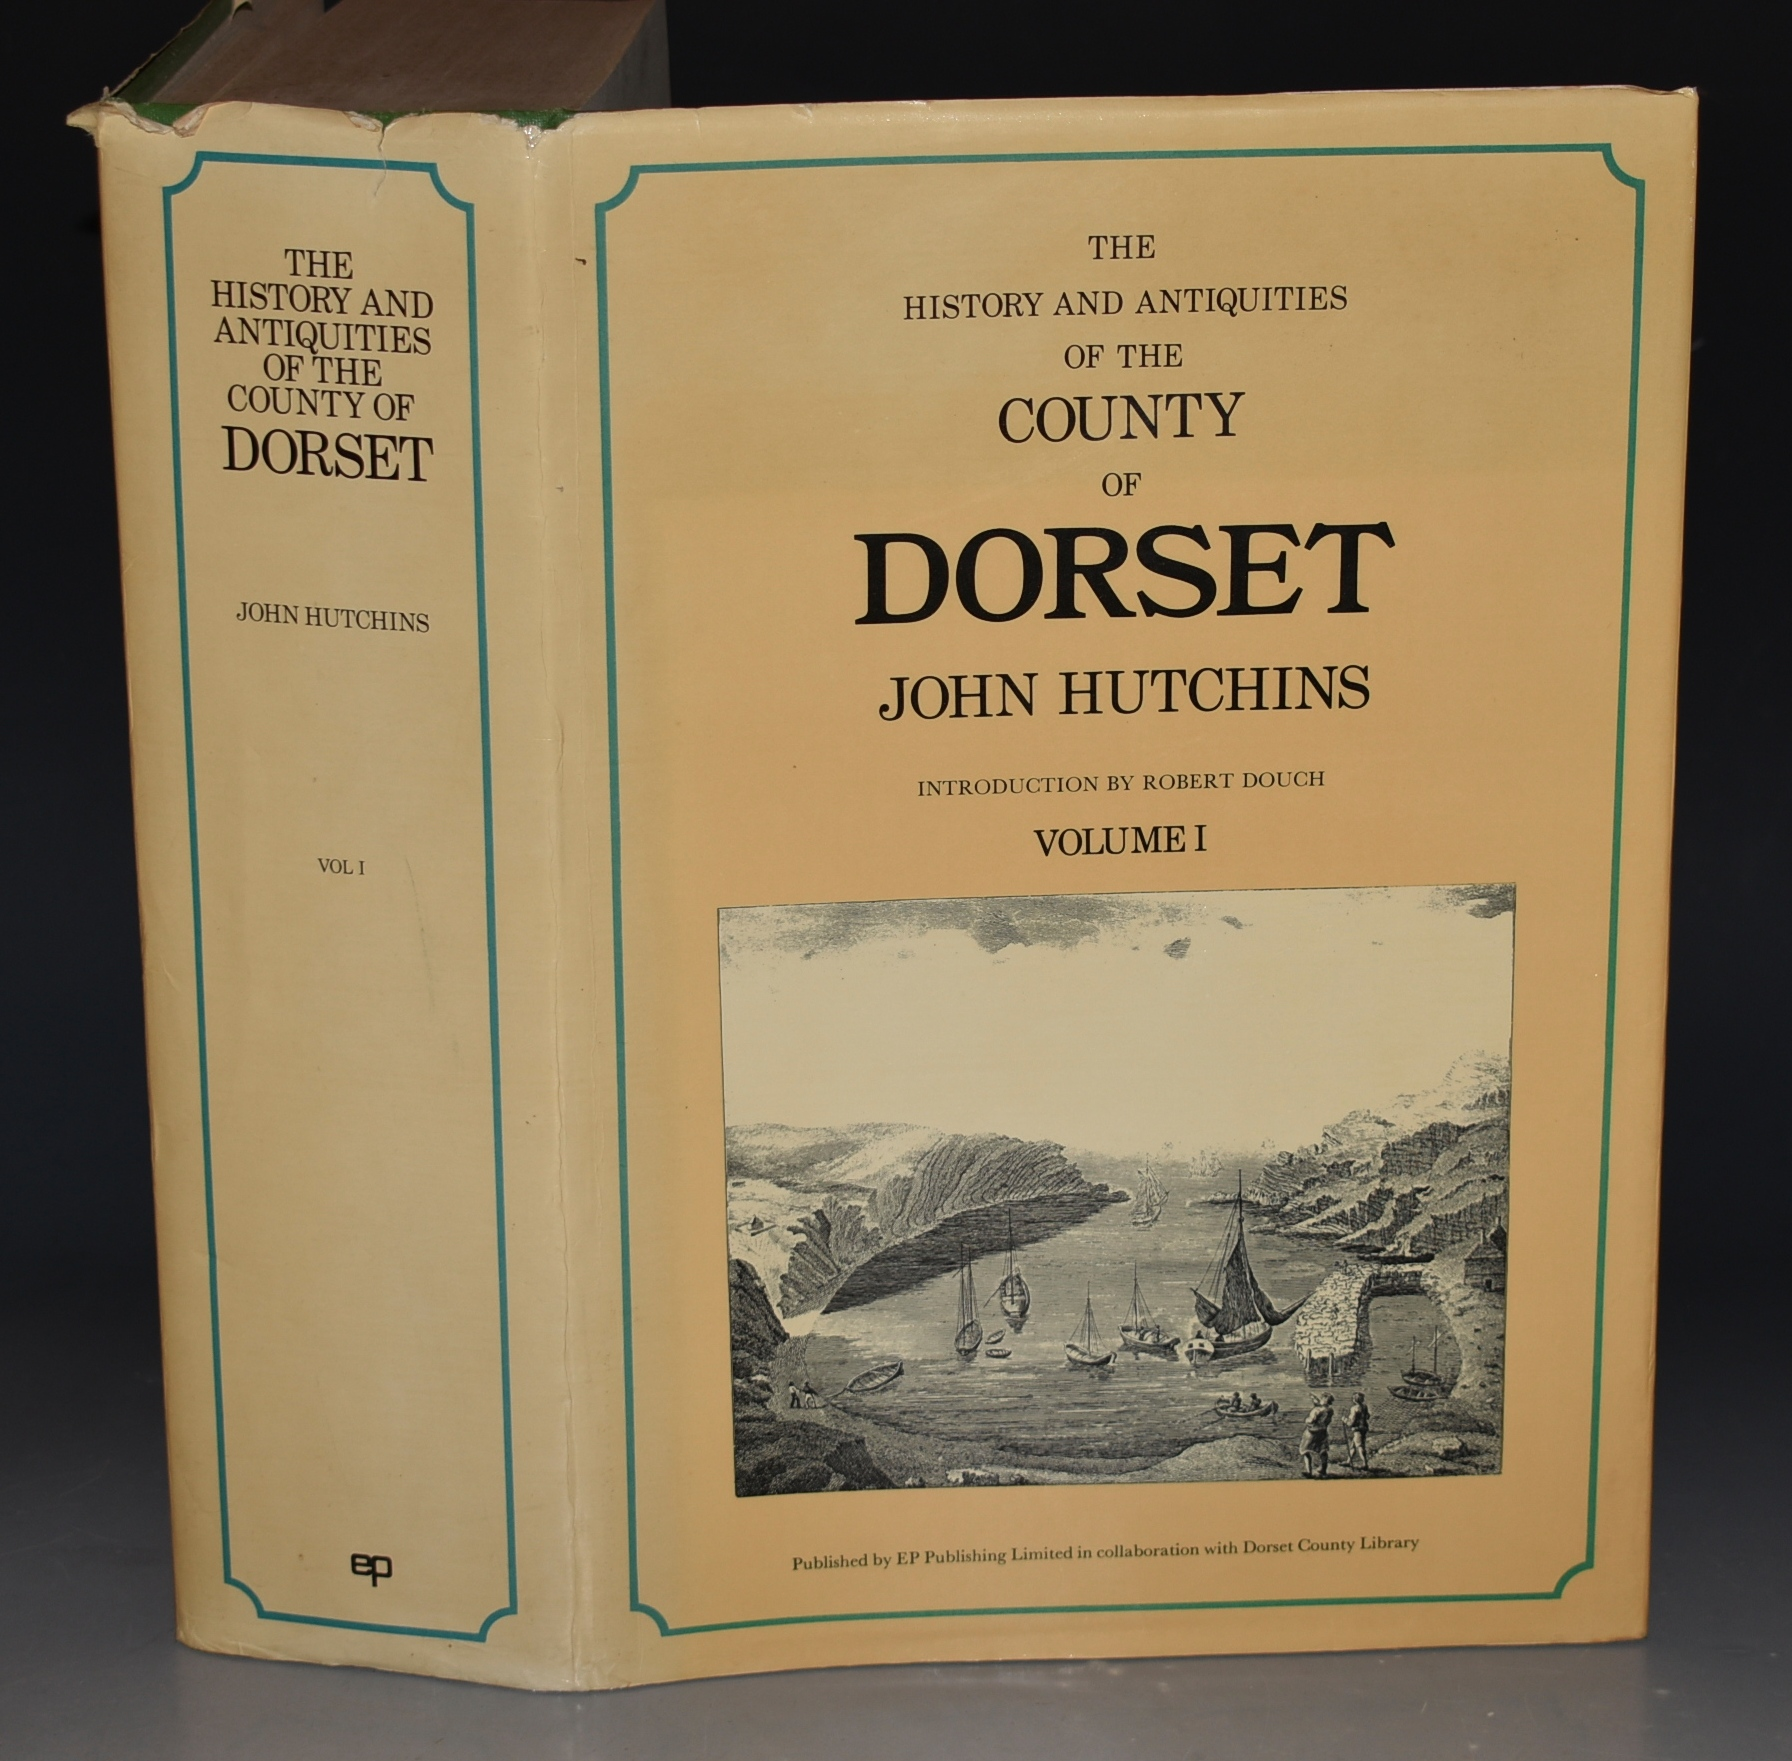 Image for History and Antiquities of the County of Dorset. Volume I. Compiled from the best and most ancient historians, inquisitiones, post mortem, and other valuable records and MSS in the public offices and libraries, and in private hands. With a copy of Domesday Book and the Inquisitio Gheldi for the County: Interpersed with some remarkable particulars of natural history; and adorned with a correct map of the county, and views of antiquities, seats of the nobility and gentry, &c. Reprint of the third edition by W.Shipp and J.W.Hodson. With a new introduction by Robert Douch. Volume I only.